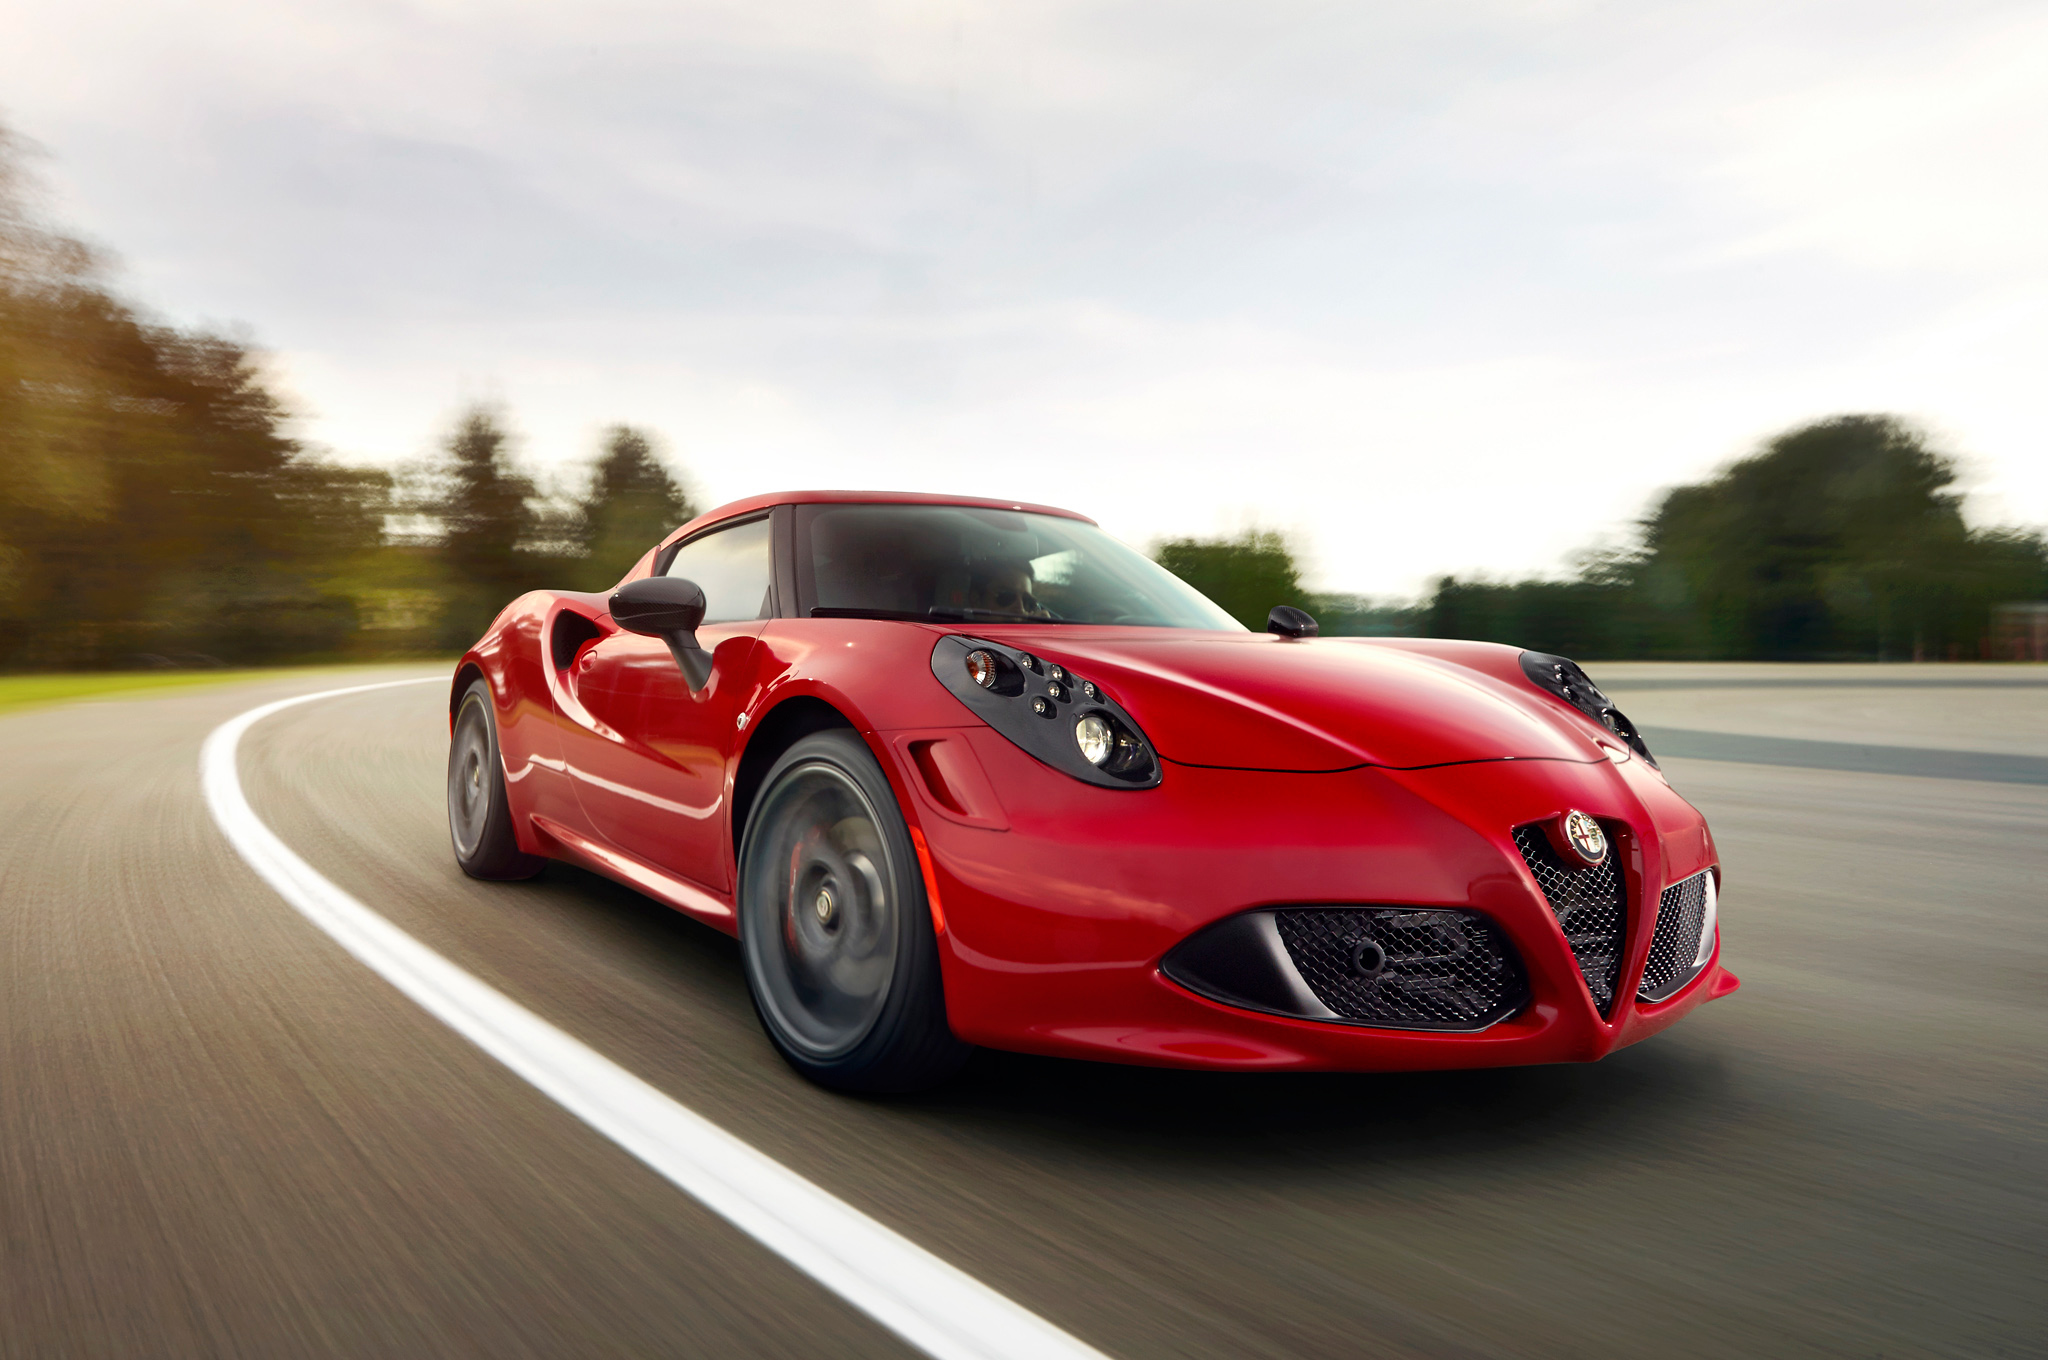 Previewing Alfa Romeo's New RWD/AWD Plan for World Domination